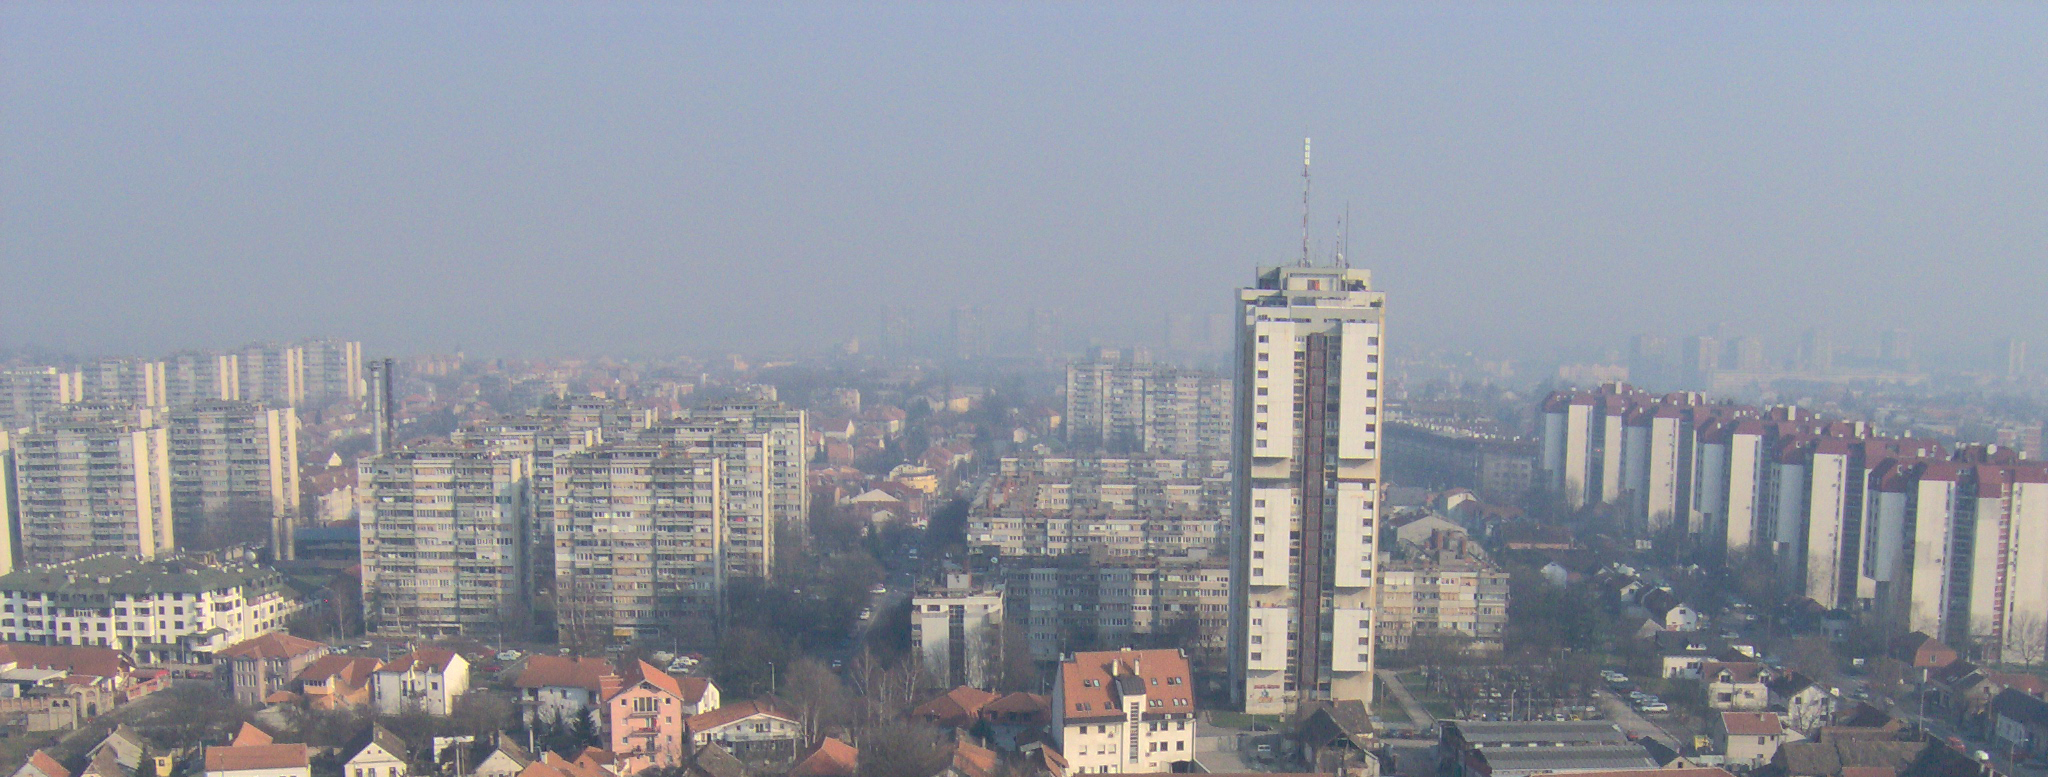 Zemun Serbia  city pictures gallery : Zemun Novi Grad Wikimedia Commons